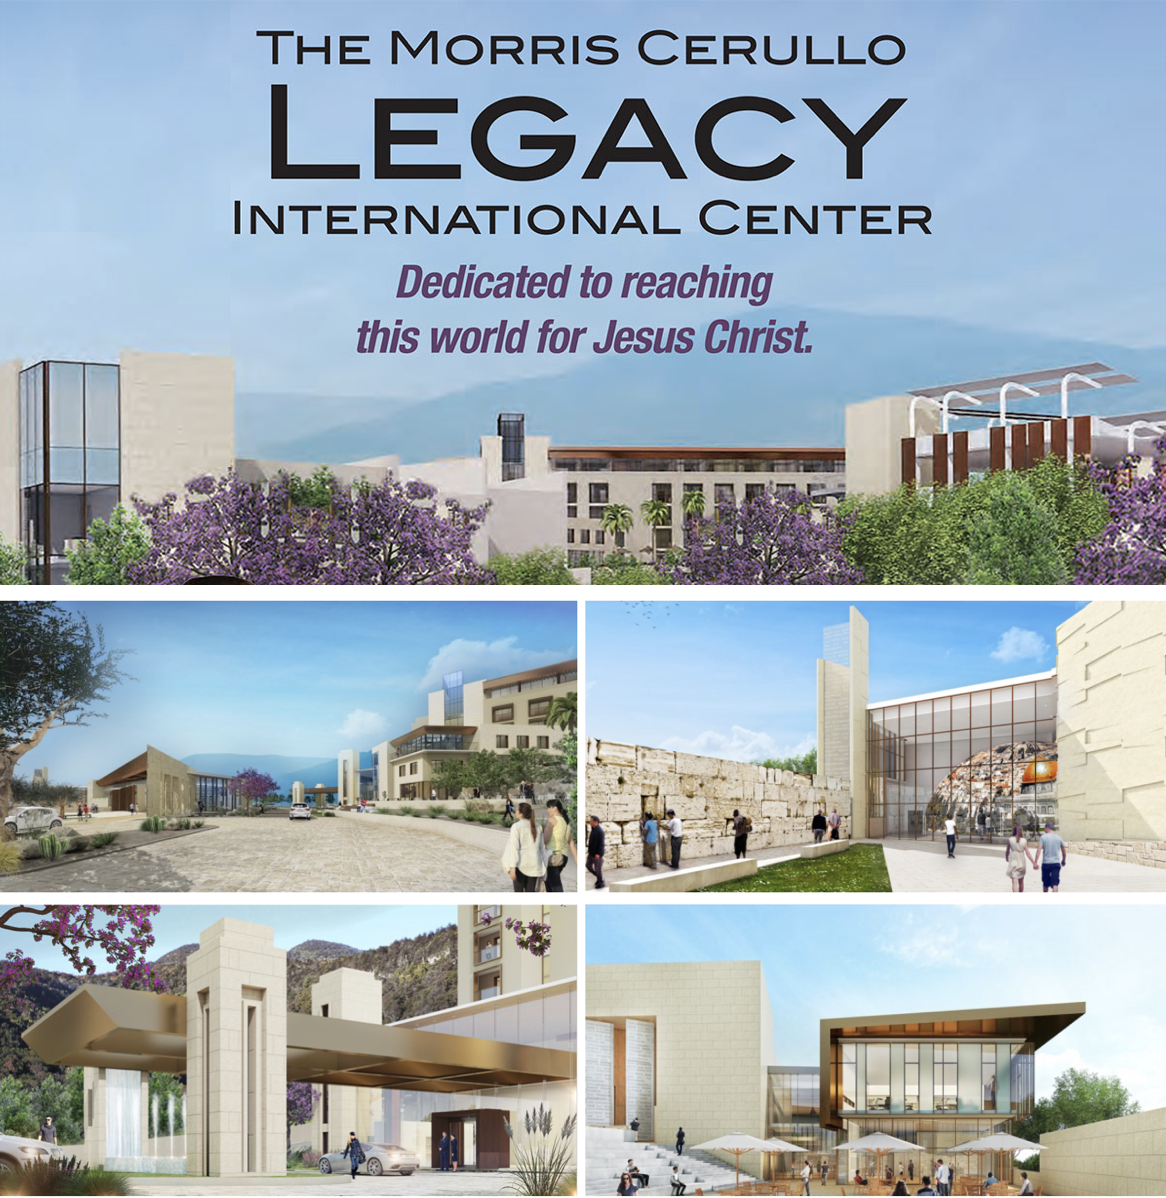 New Restaurants International Market Coming To San Go S Mission Valley As Part Of Controversial Evangelist Legacy Center